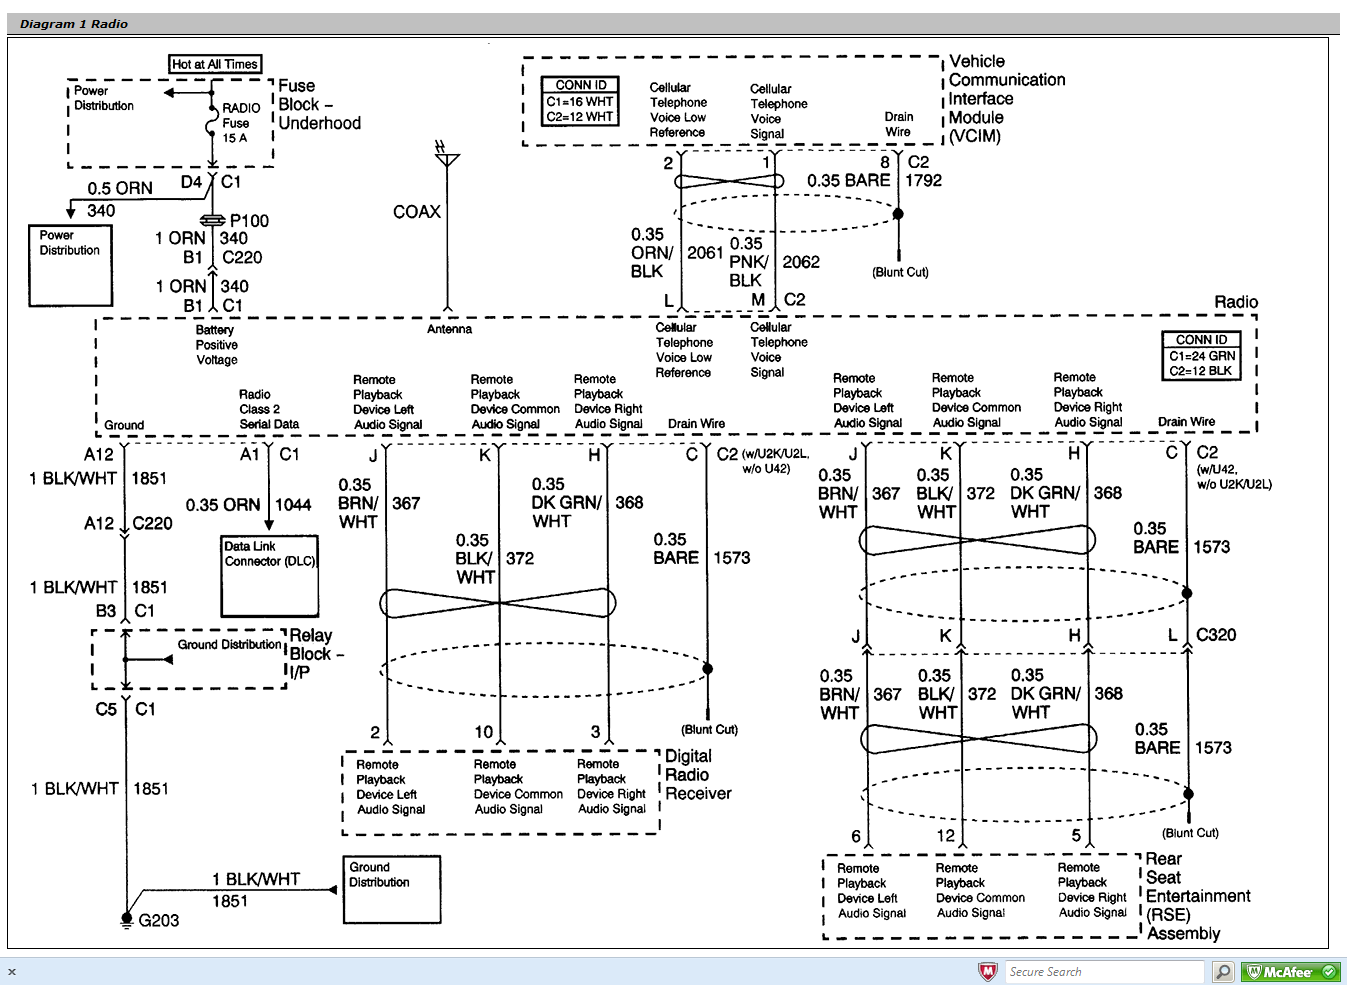 04 Silverado Radio Wiring Diagram from diagramweb.net